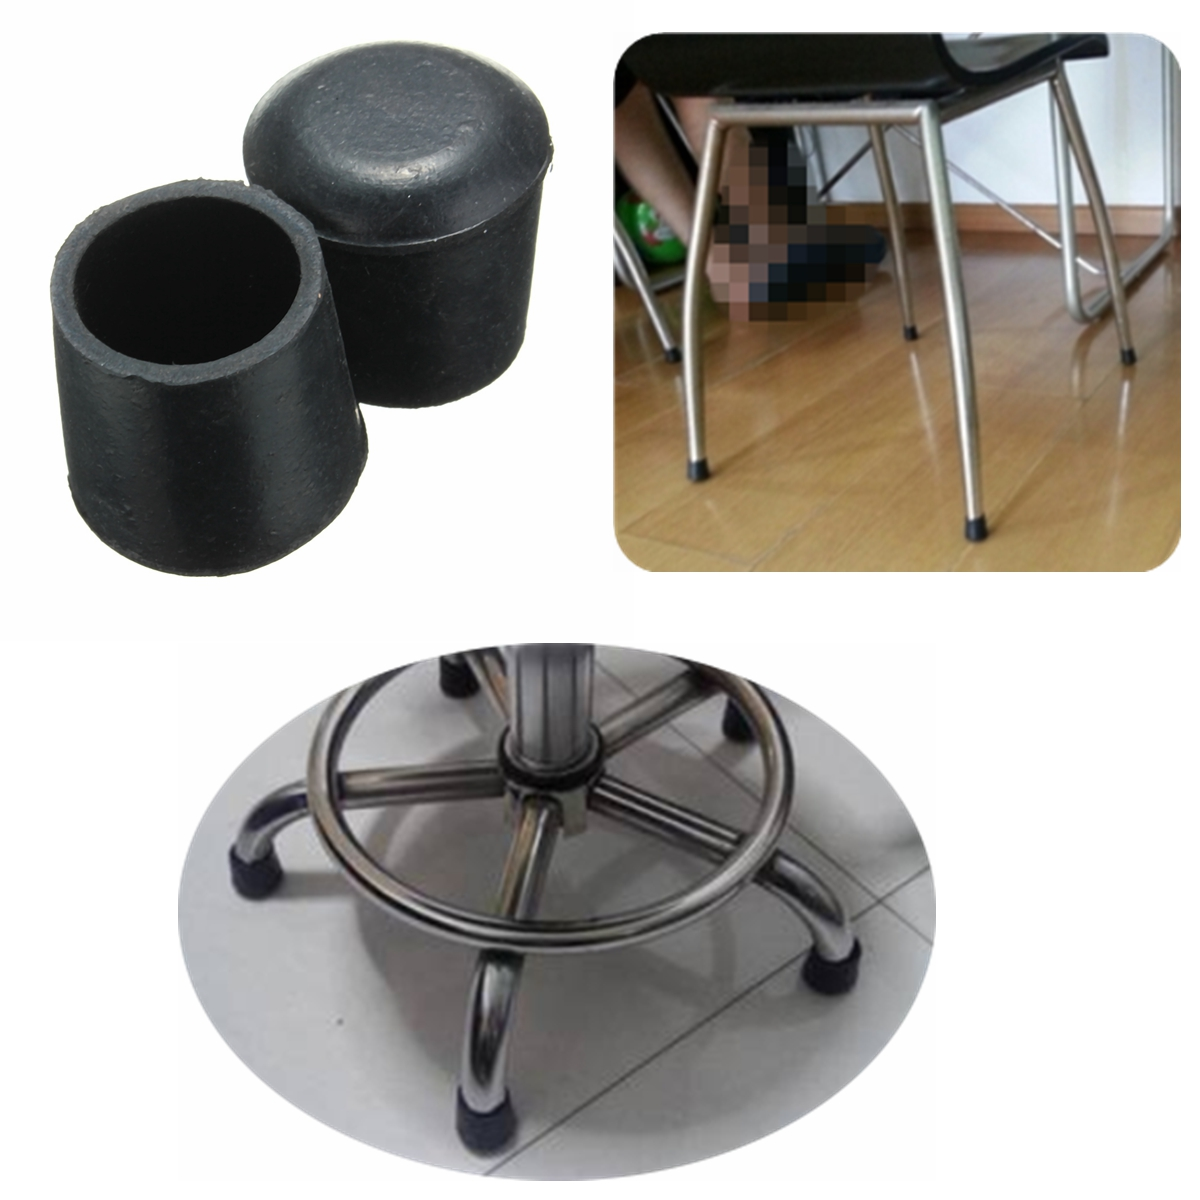 Chair Floor Protectors Rubber Reanimators : 9C13CCCD2633639B9945D253C8CE9BD2CF639563CED2839A23CDD297669B9C239B636663FB26463393F5CE from myideasbedroom.com size 1200 x 1200 jpeg 361kB